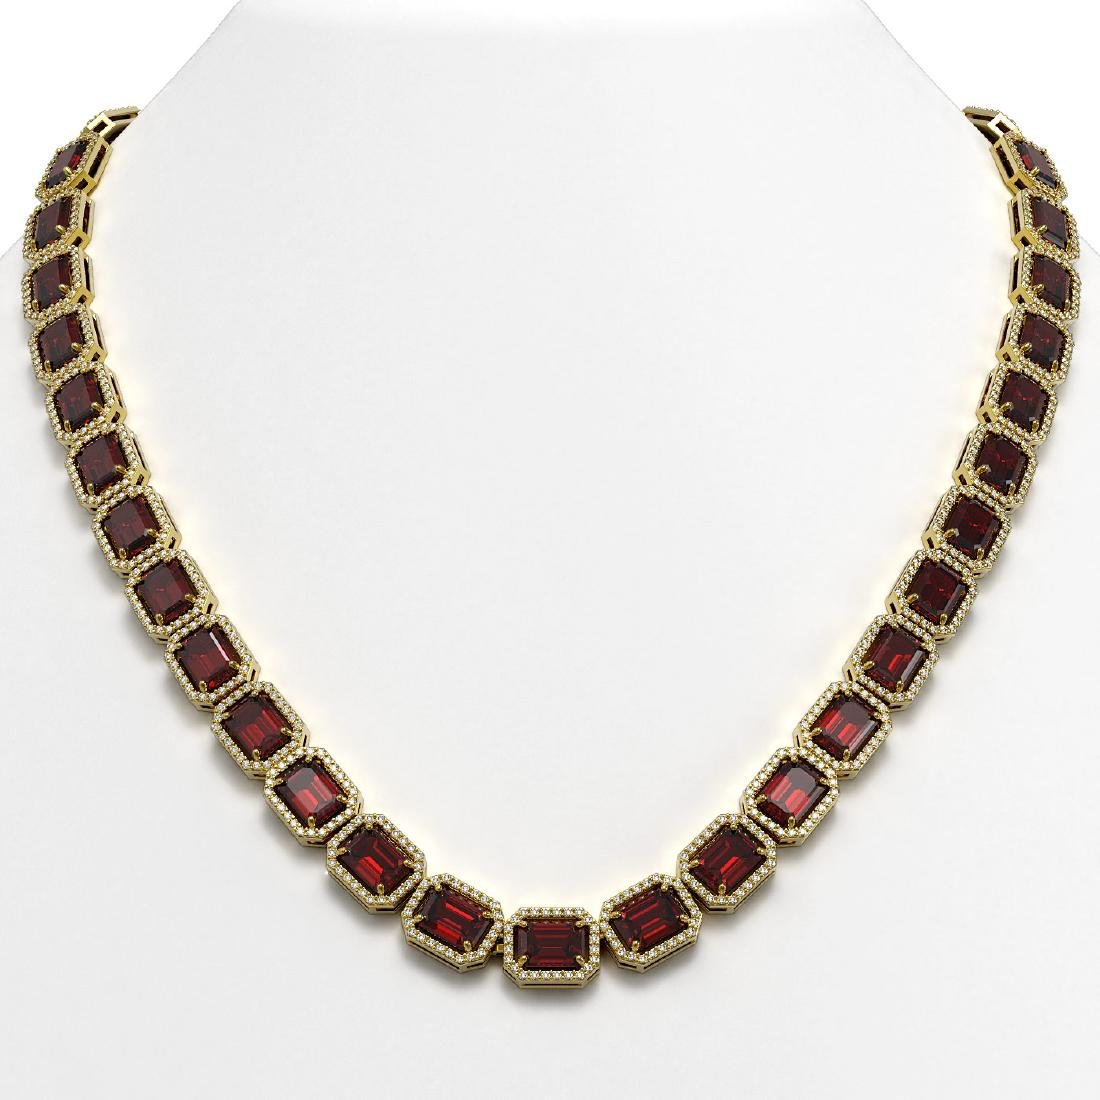 60.59 CTW Garnet & Diamond Halo Necklace 10K Yellow